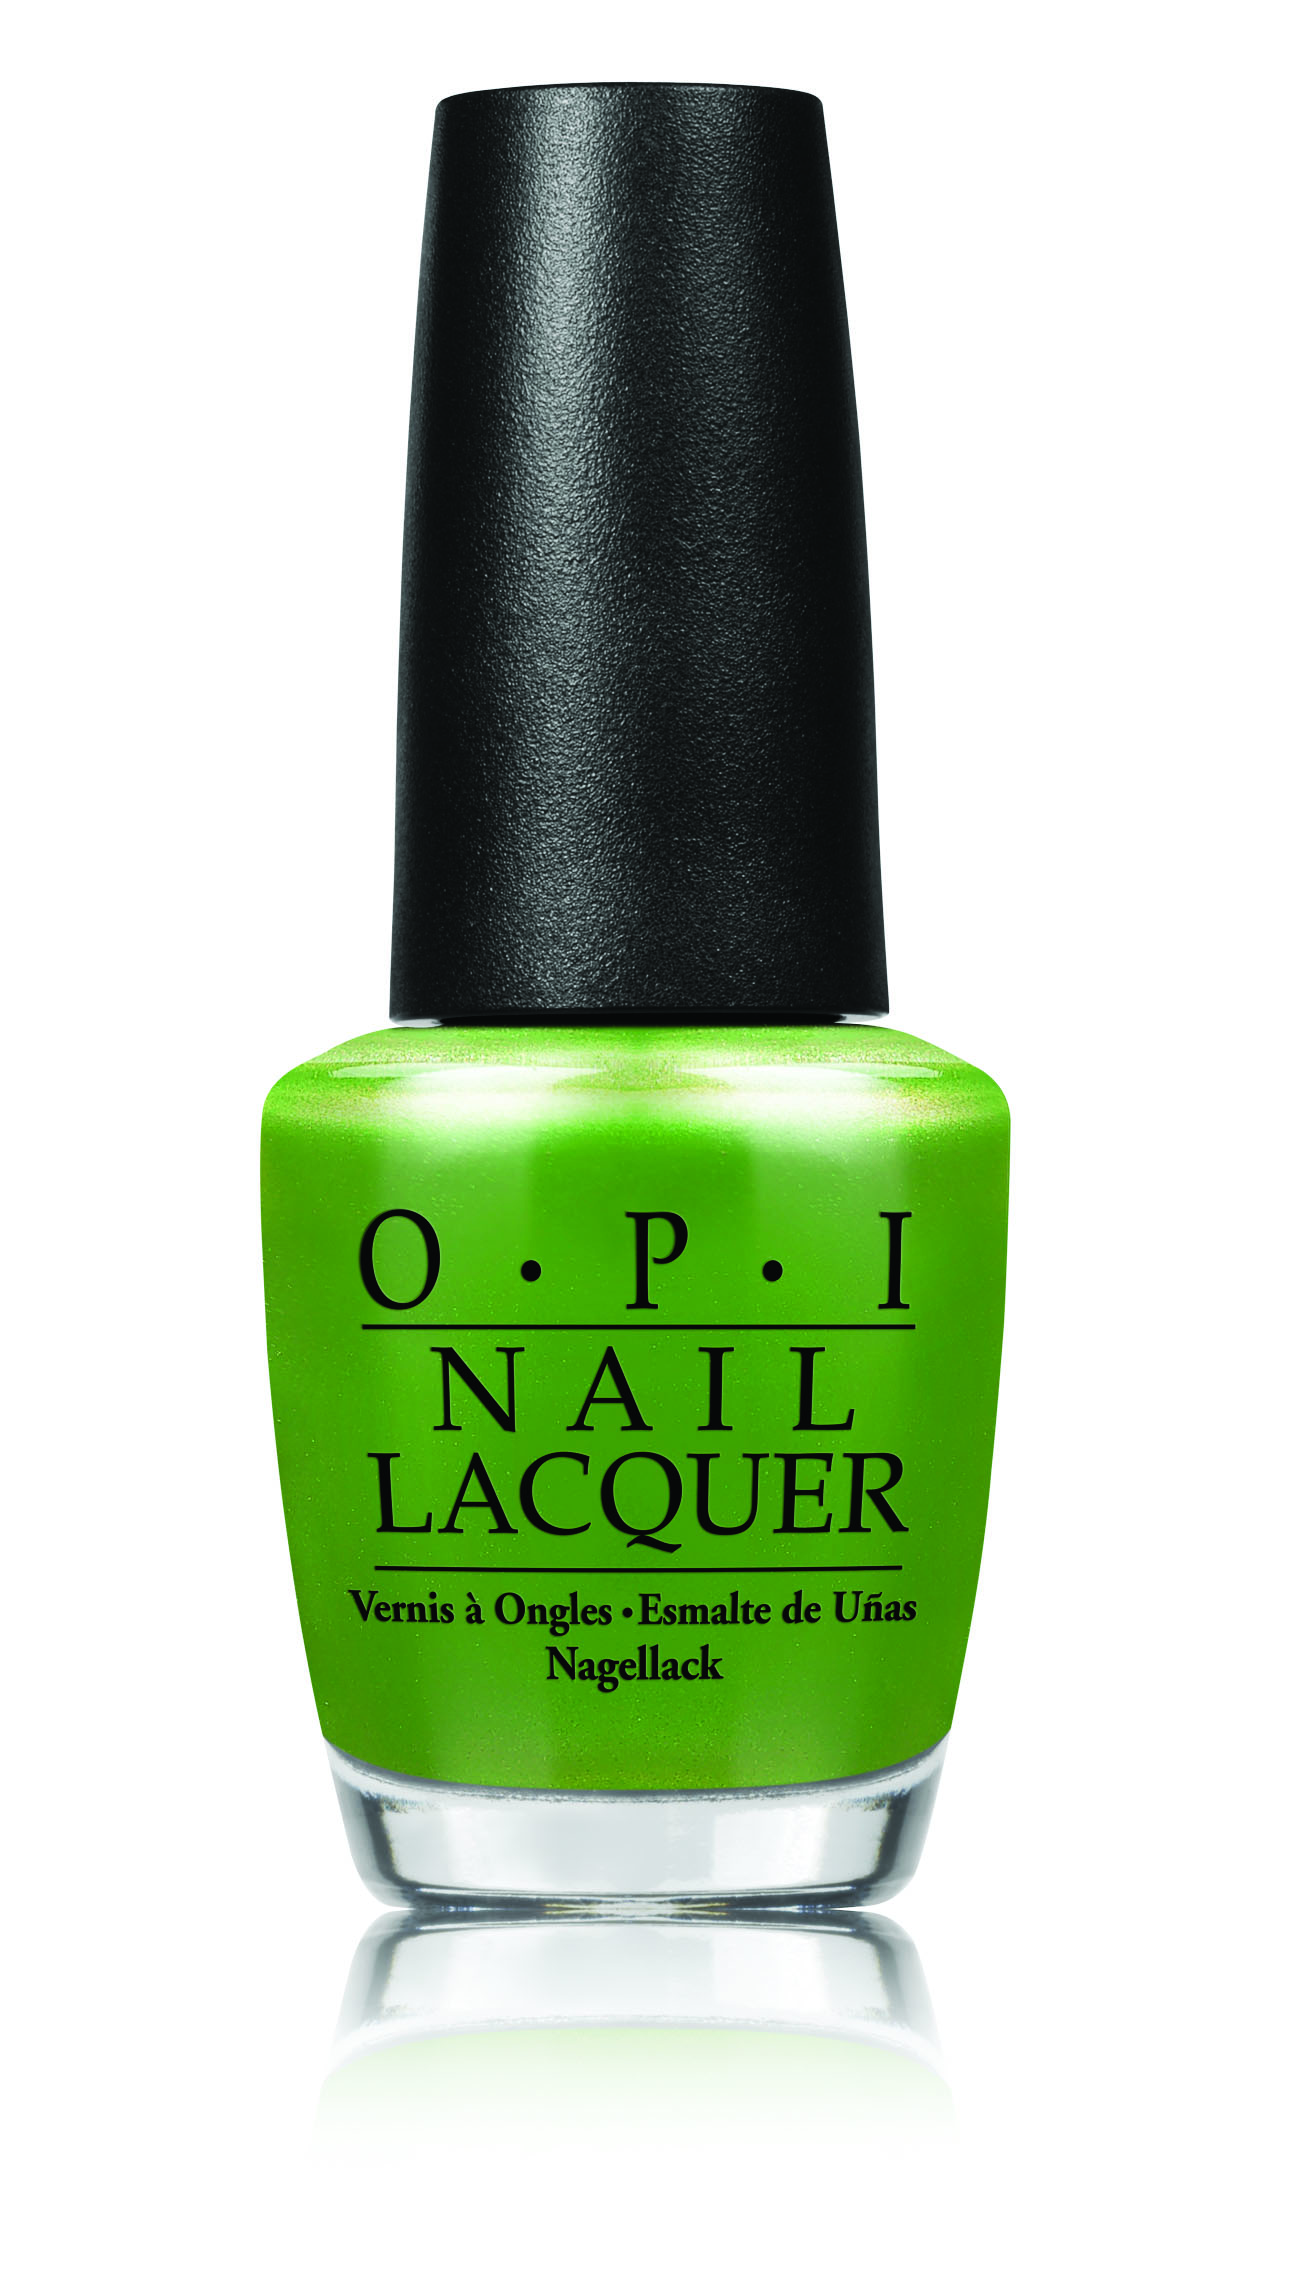 OPI Hawaii Collection Press Release - The Polished Mommy